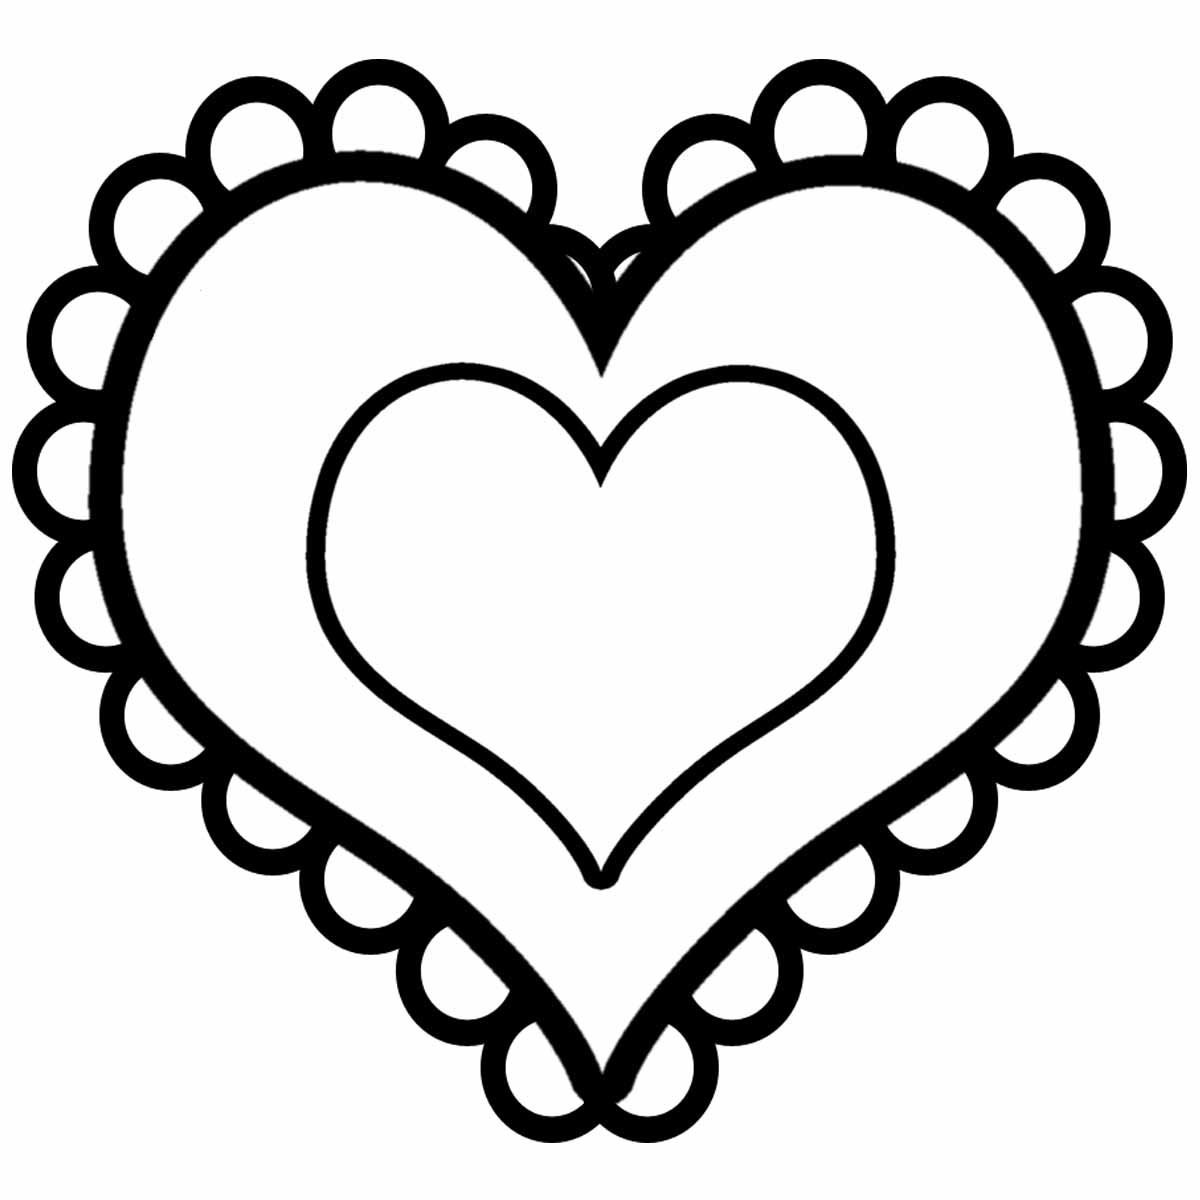 coloring pages heart shape hearts coloring pages getcoloringpagescom heart shape coloring pages